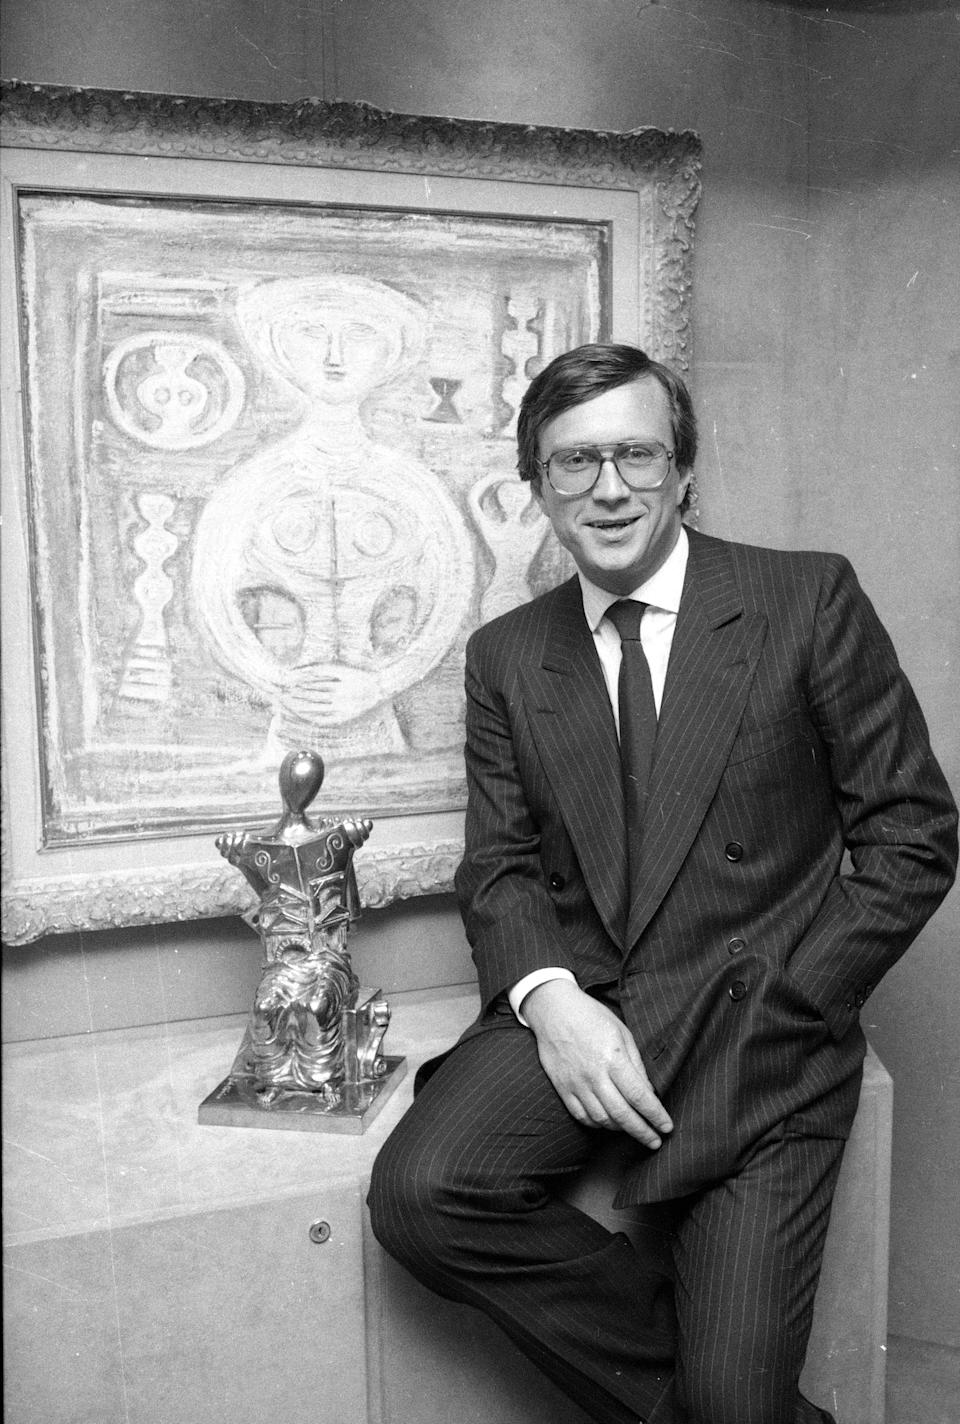 Maurizio Gucci, the new chairman of the board at Gucci, poses in the Gucci offices in New York, April 20, 1985.  The grandson of founder Guccio Gucci, Maurizio took over as head of the renowned accessory house in November after his uncle, Aldo Gucci, settled into